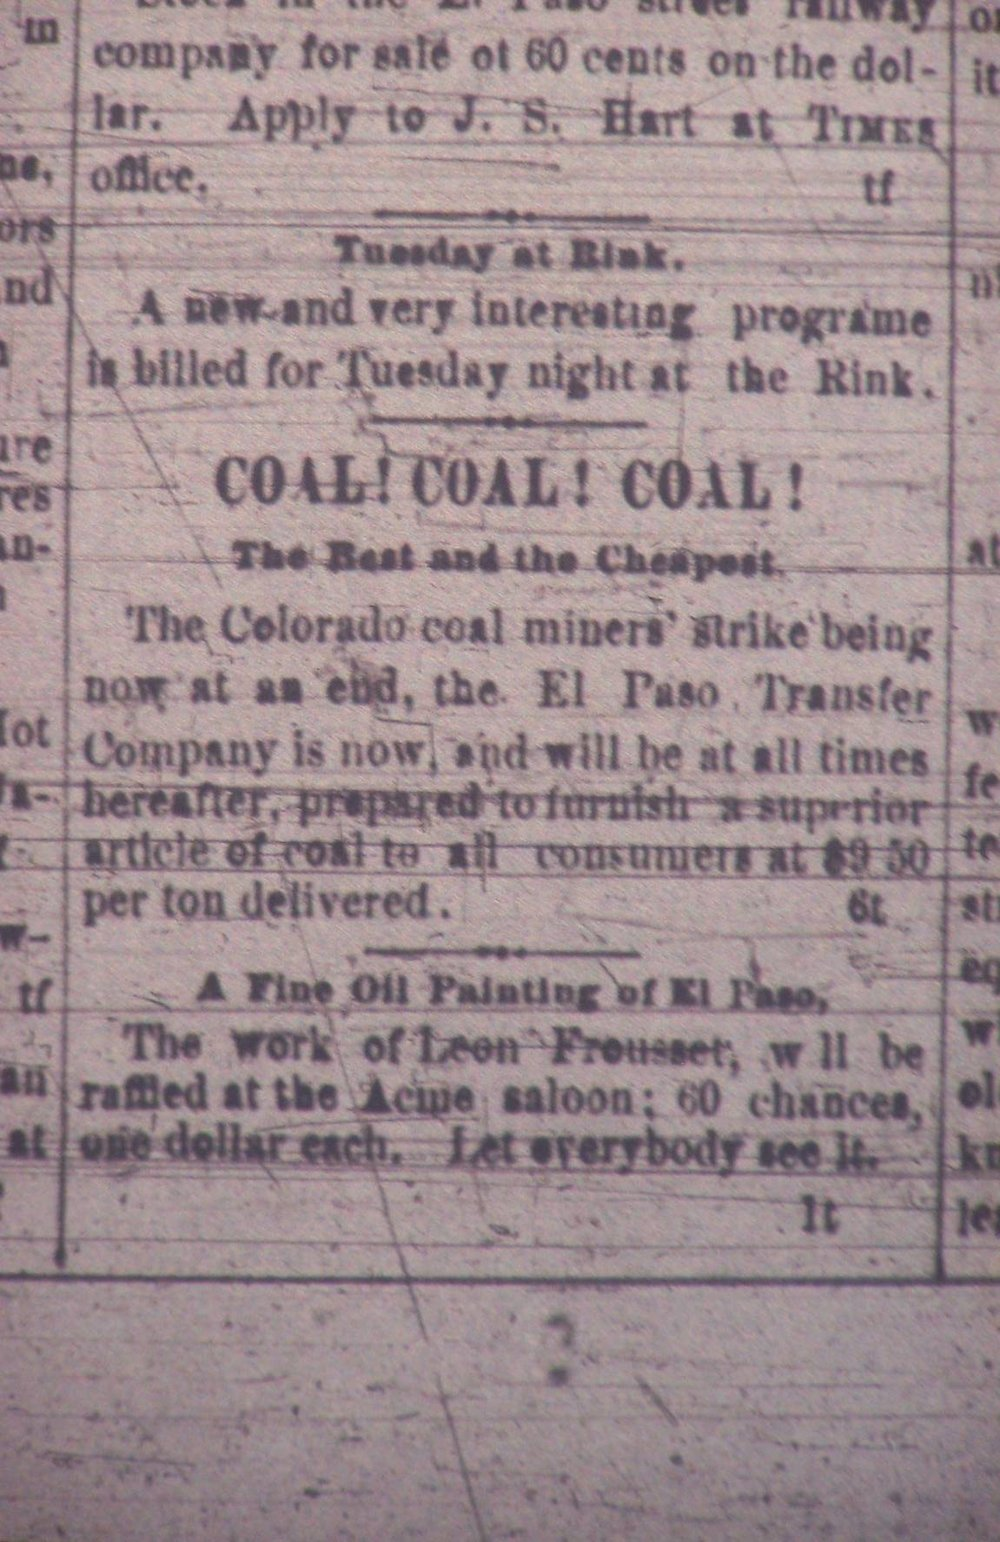 News E.P. Daily Times Jan.23, 1885.jpg